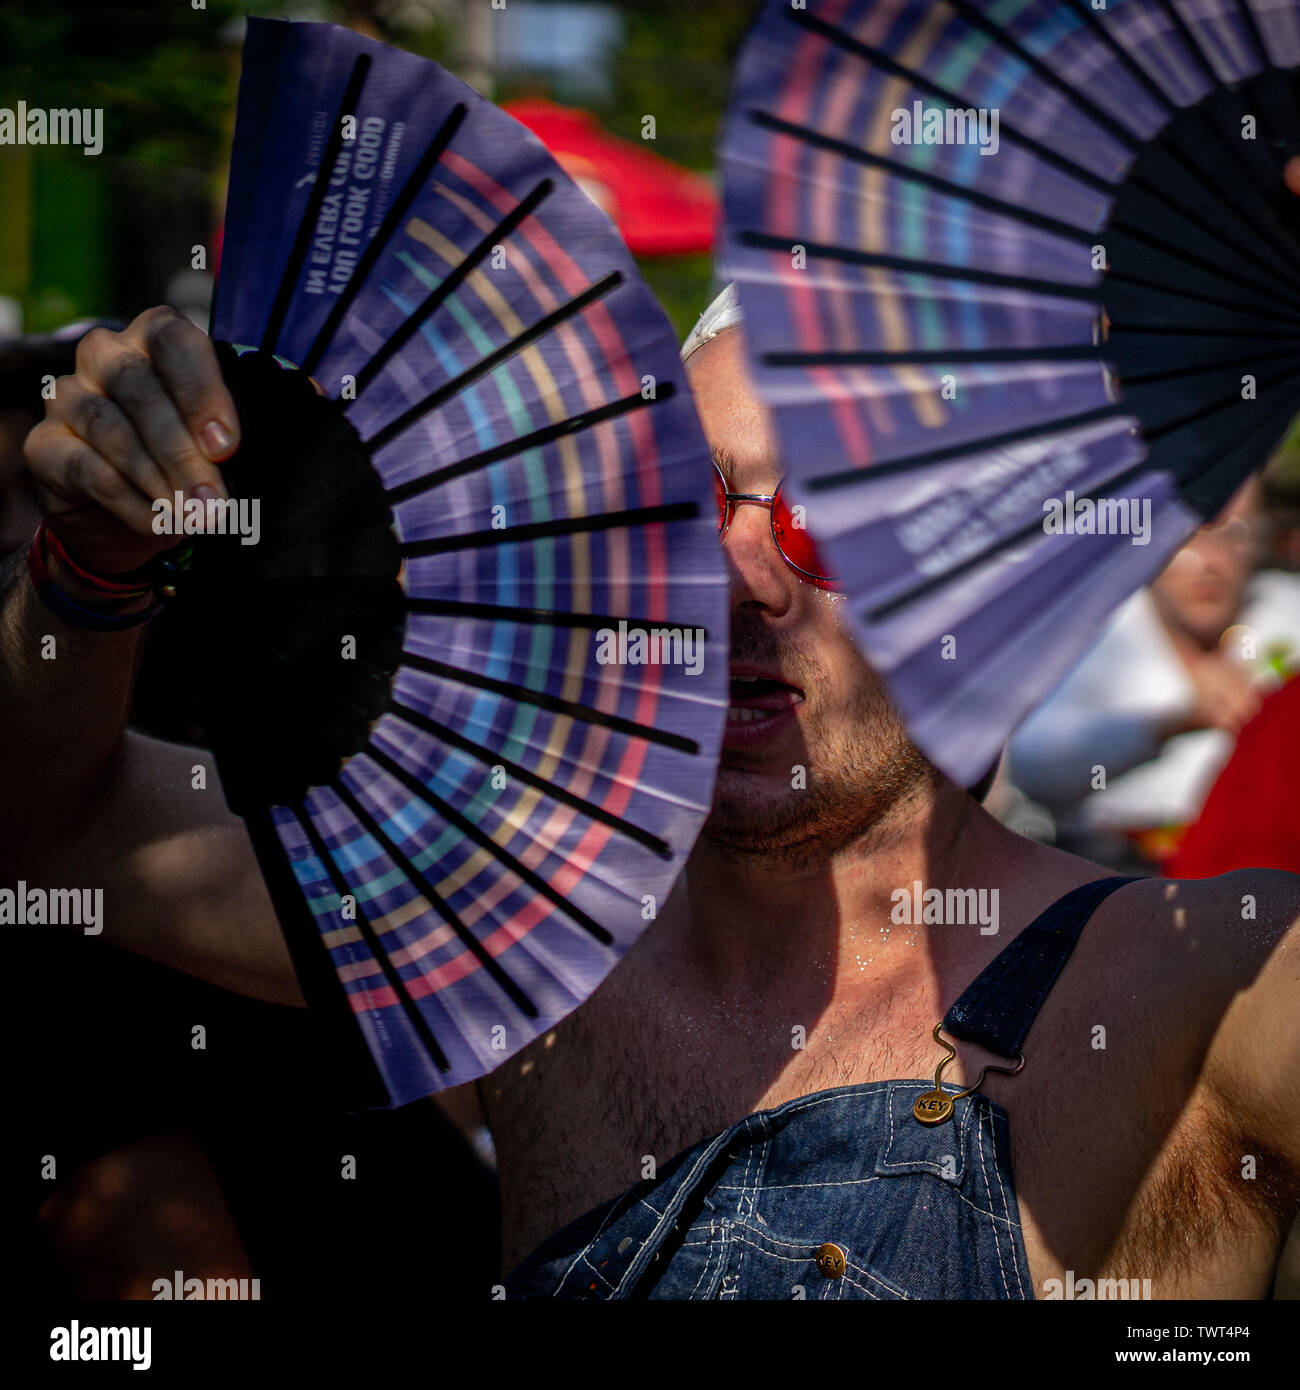 Chicago, Illinois, USA. 22nd June, 2019. Grant hides behind a fan dance on a sweaty Chicago Saturday; at Roscoe's Tavern, a few blocks from Pride Fest Credit: Chris Riha/ZUMA Wire/Alamy Live News - Stock Image